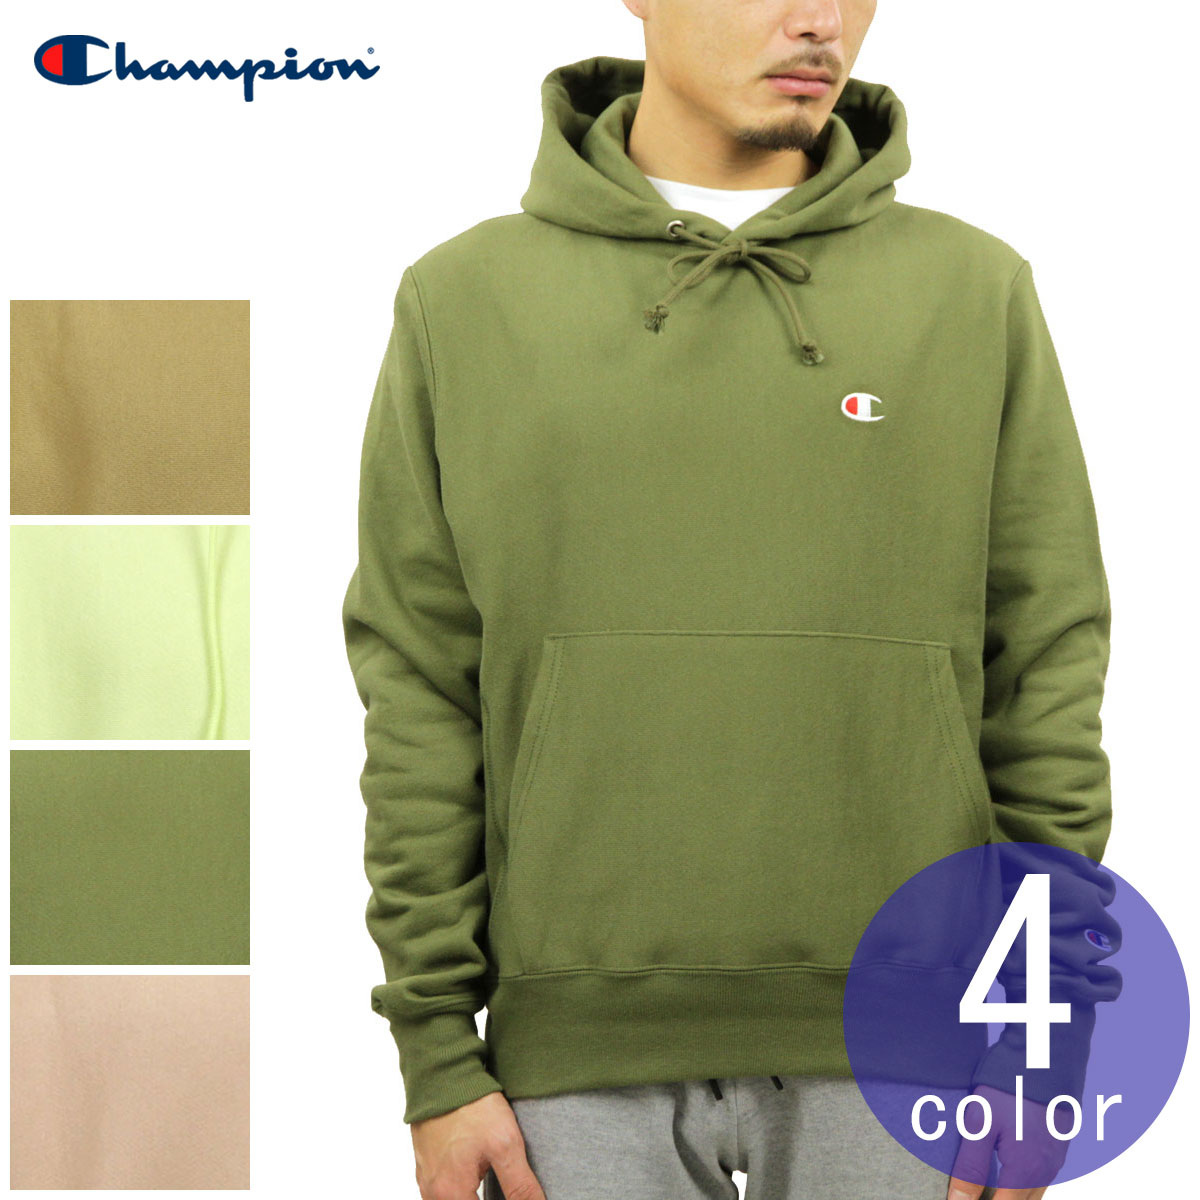 08e51d6b39 Champion CHAMPION regular article men Urban Outfitters comment color  reverse Wiebe pullover parka plain fabric back raising REVERSE WEAVE HOODIE  ...